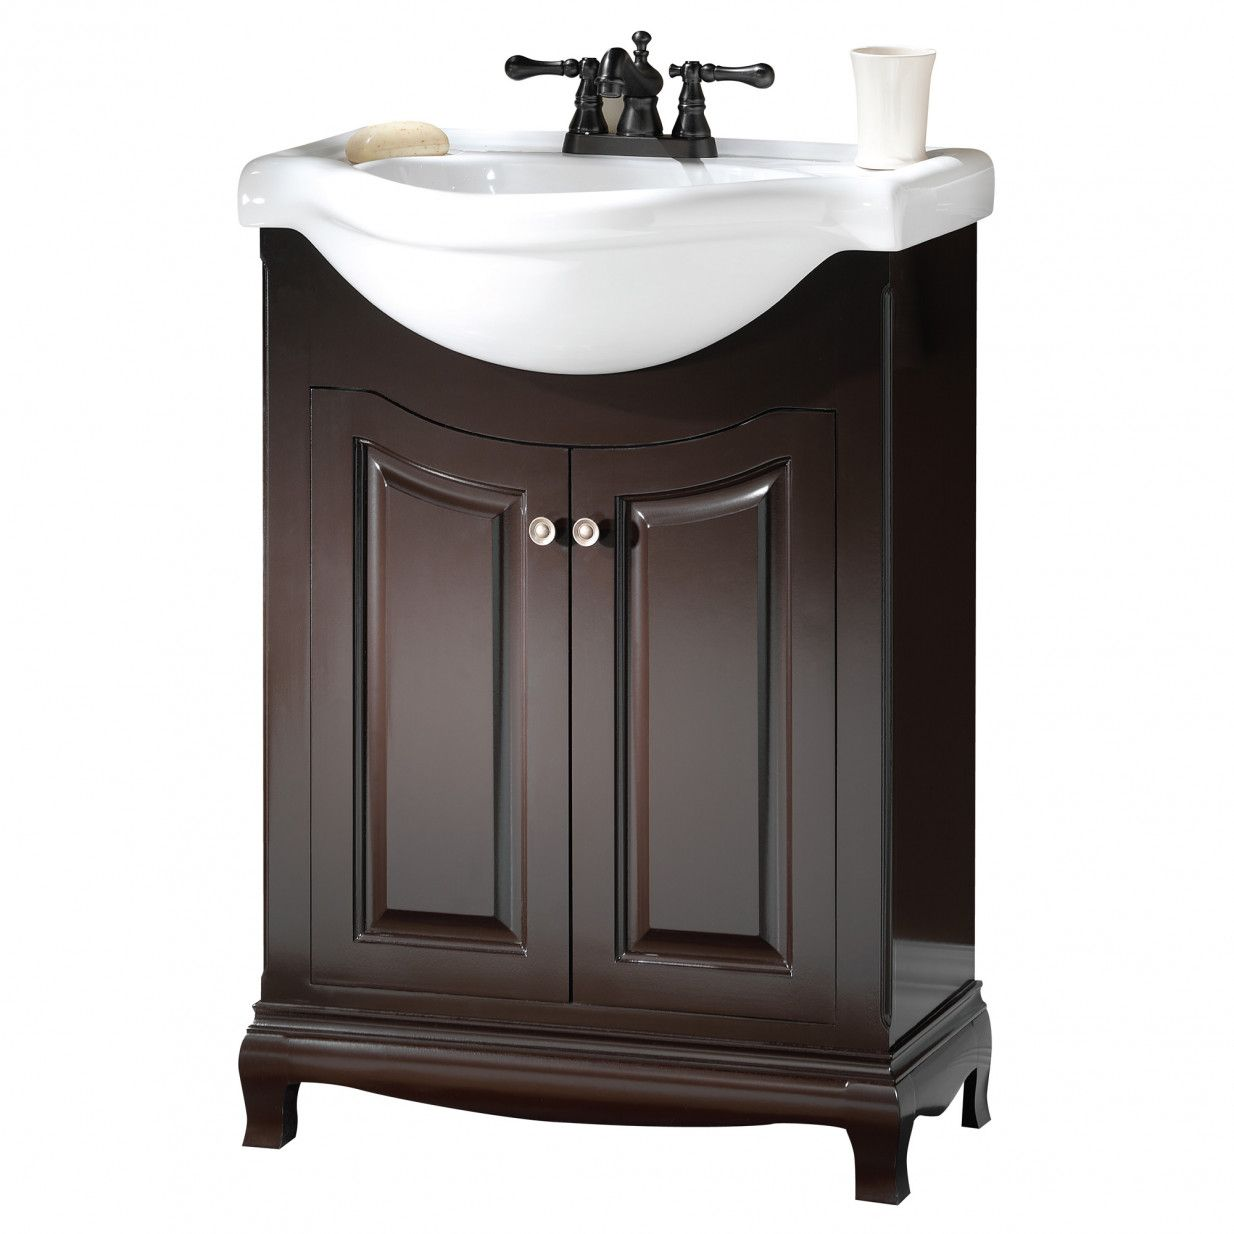 99 20 Inch Bathroom Vanity Cabinets Neutral Interior Paint Colors Check More At Http 1coolair Com 20 Inch Bathro Bathroom Vanity Style Bathroom Top Vanity